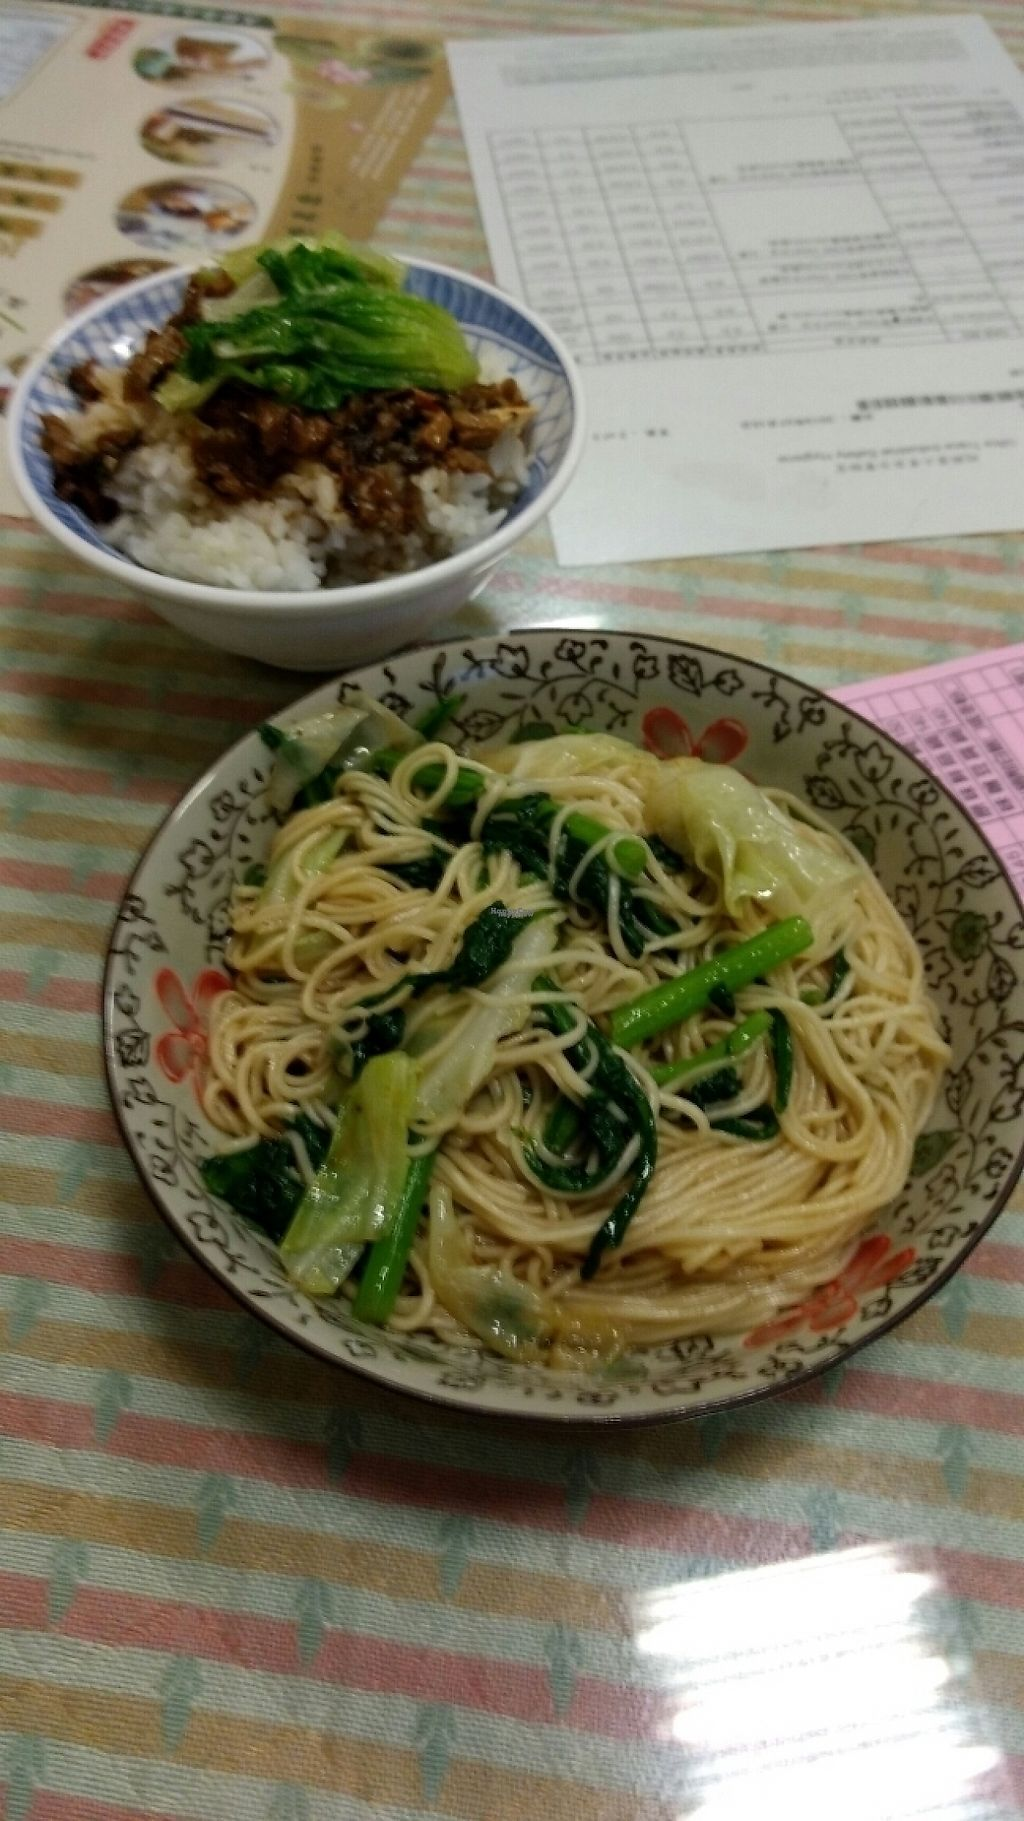 """Photo of Ai Mama  by <a href=""""/members/profile/dreadjohn"""">dreadjohn</a> <br/>sesame noodles and tofu rice <br/> March 6, 2017  - <a href='/contact/abuse/image/77515/233280'>Report</a>"""